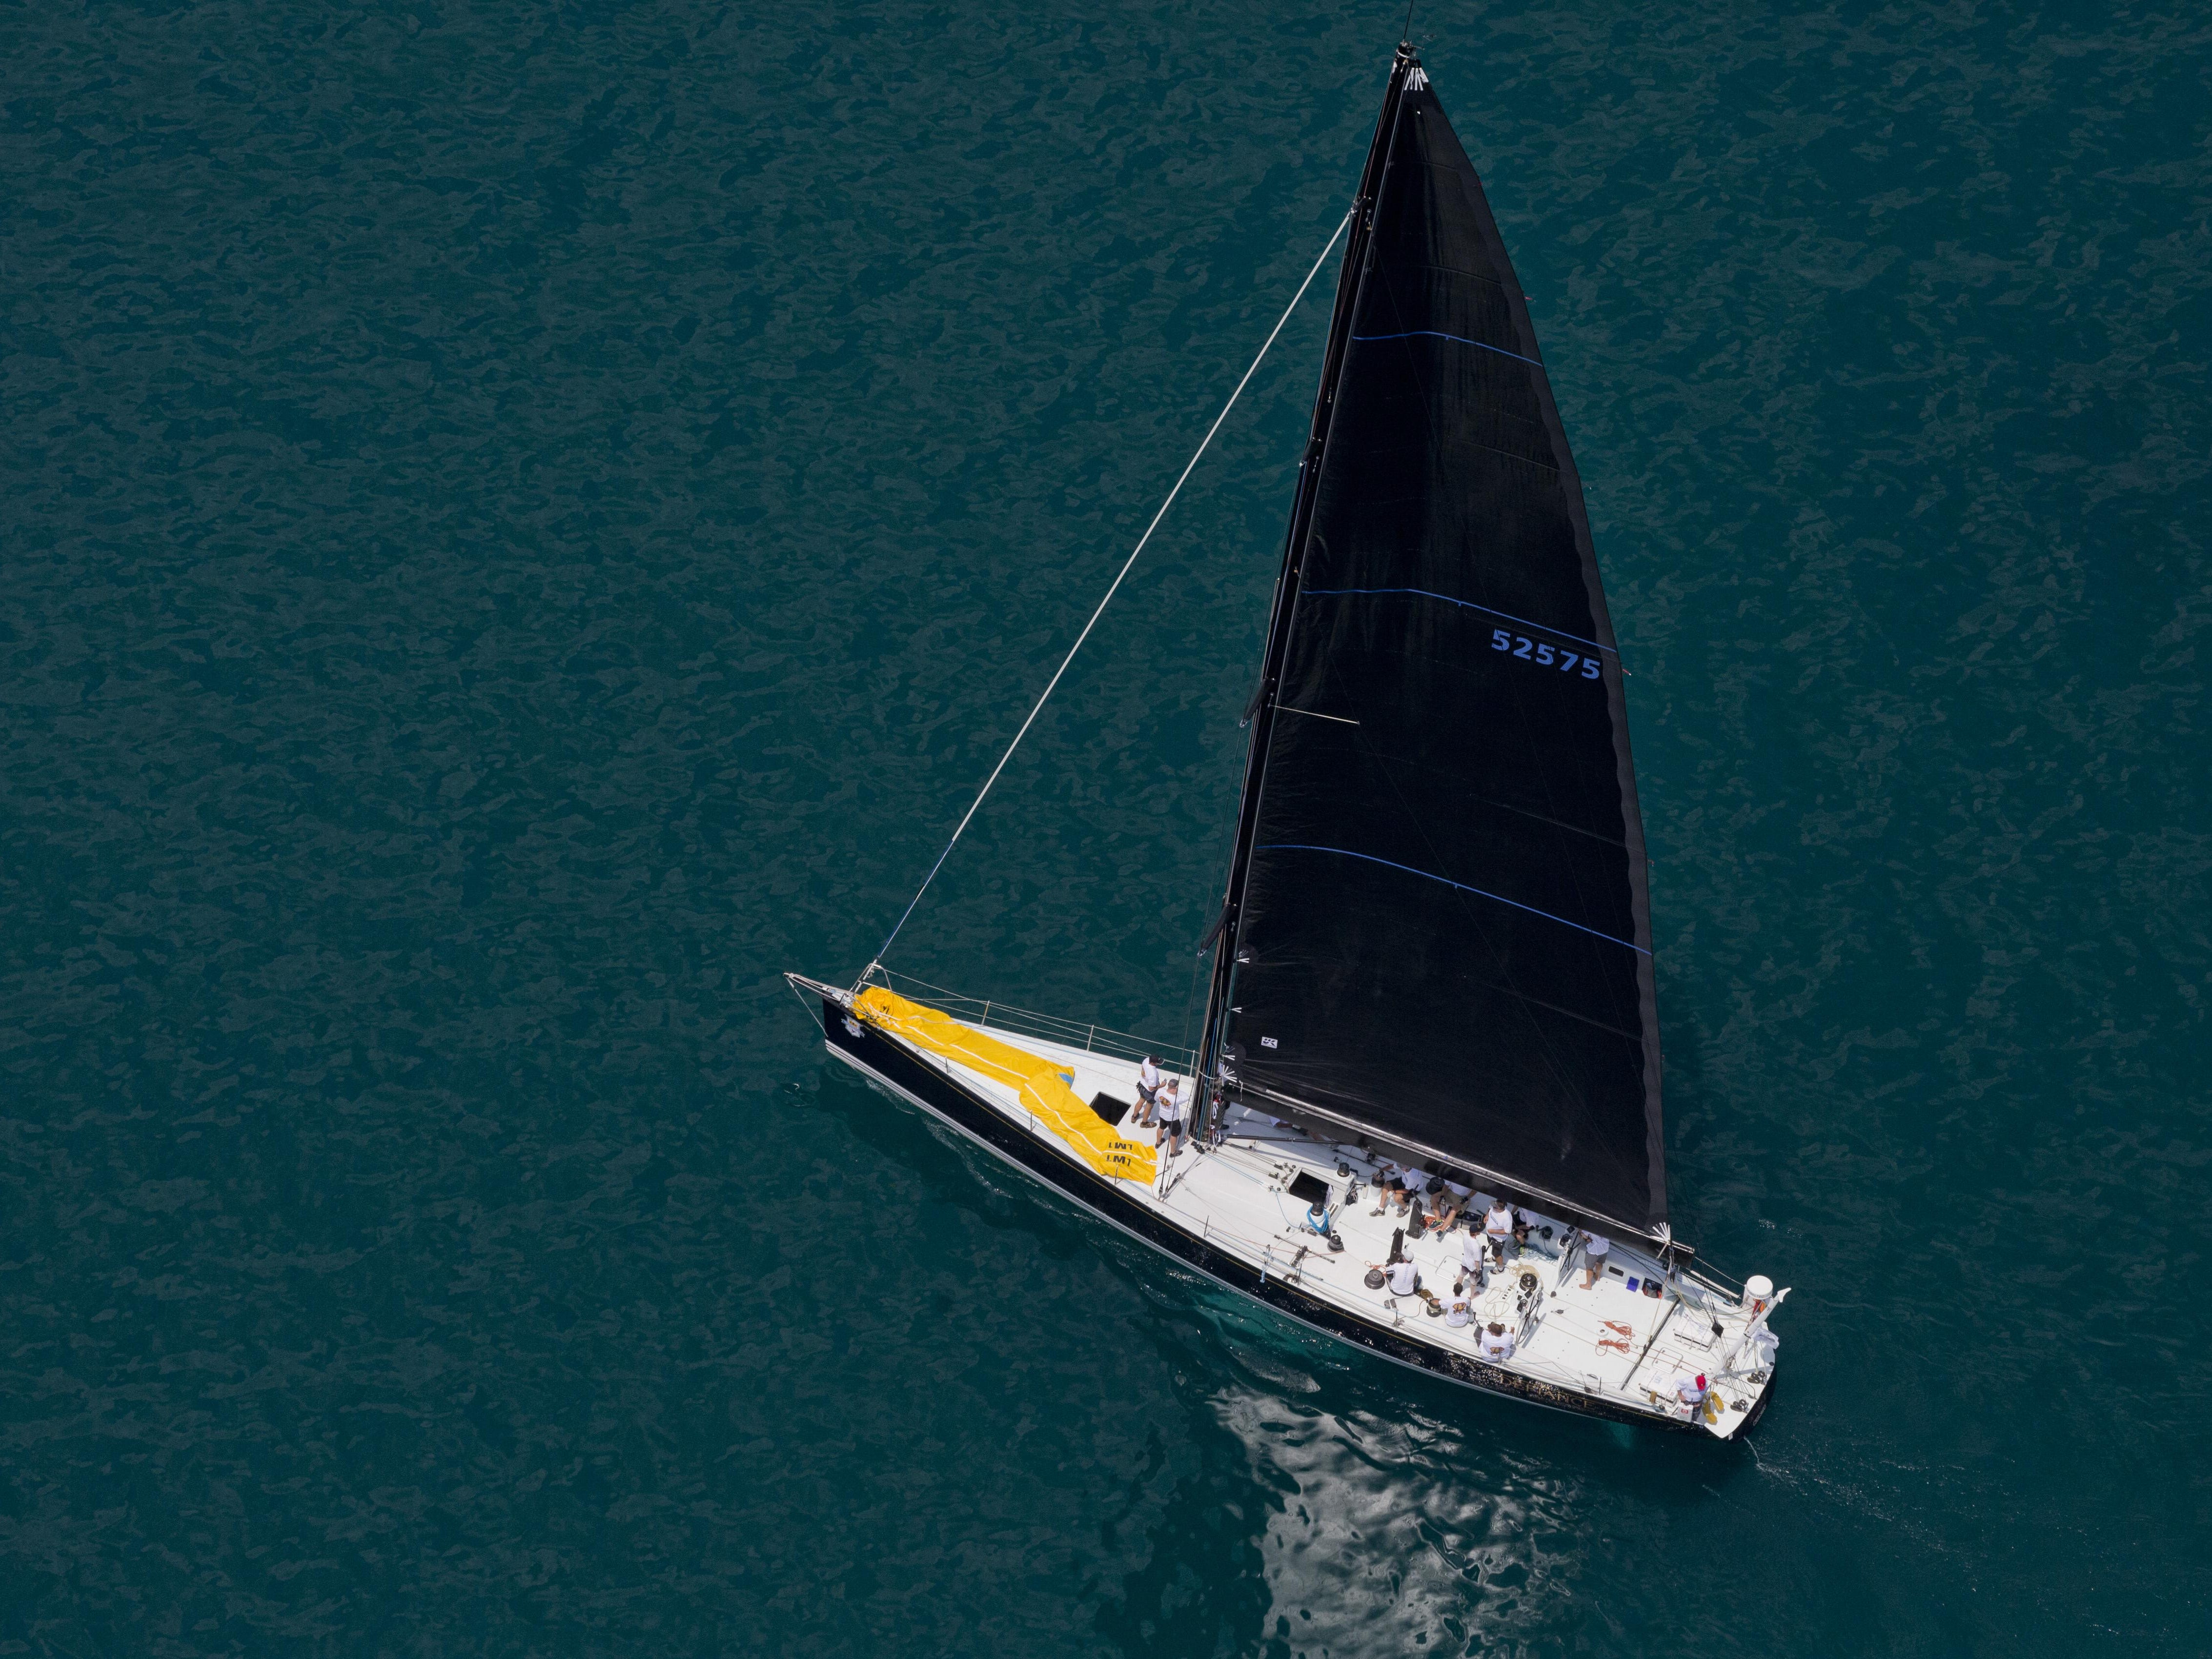 Defiance, of Chicago Yacht Club, competes in Class A during the start of the Port Huron-to-Mackinac Island sailboat race Saturday on Lake Huron.